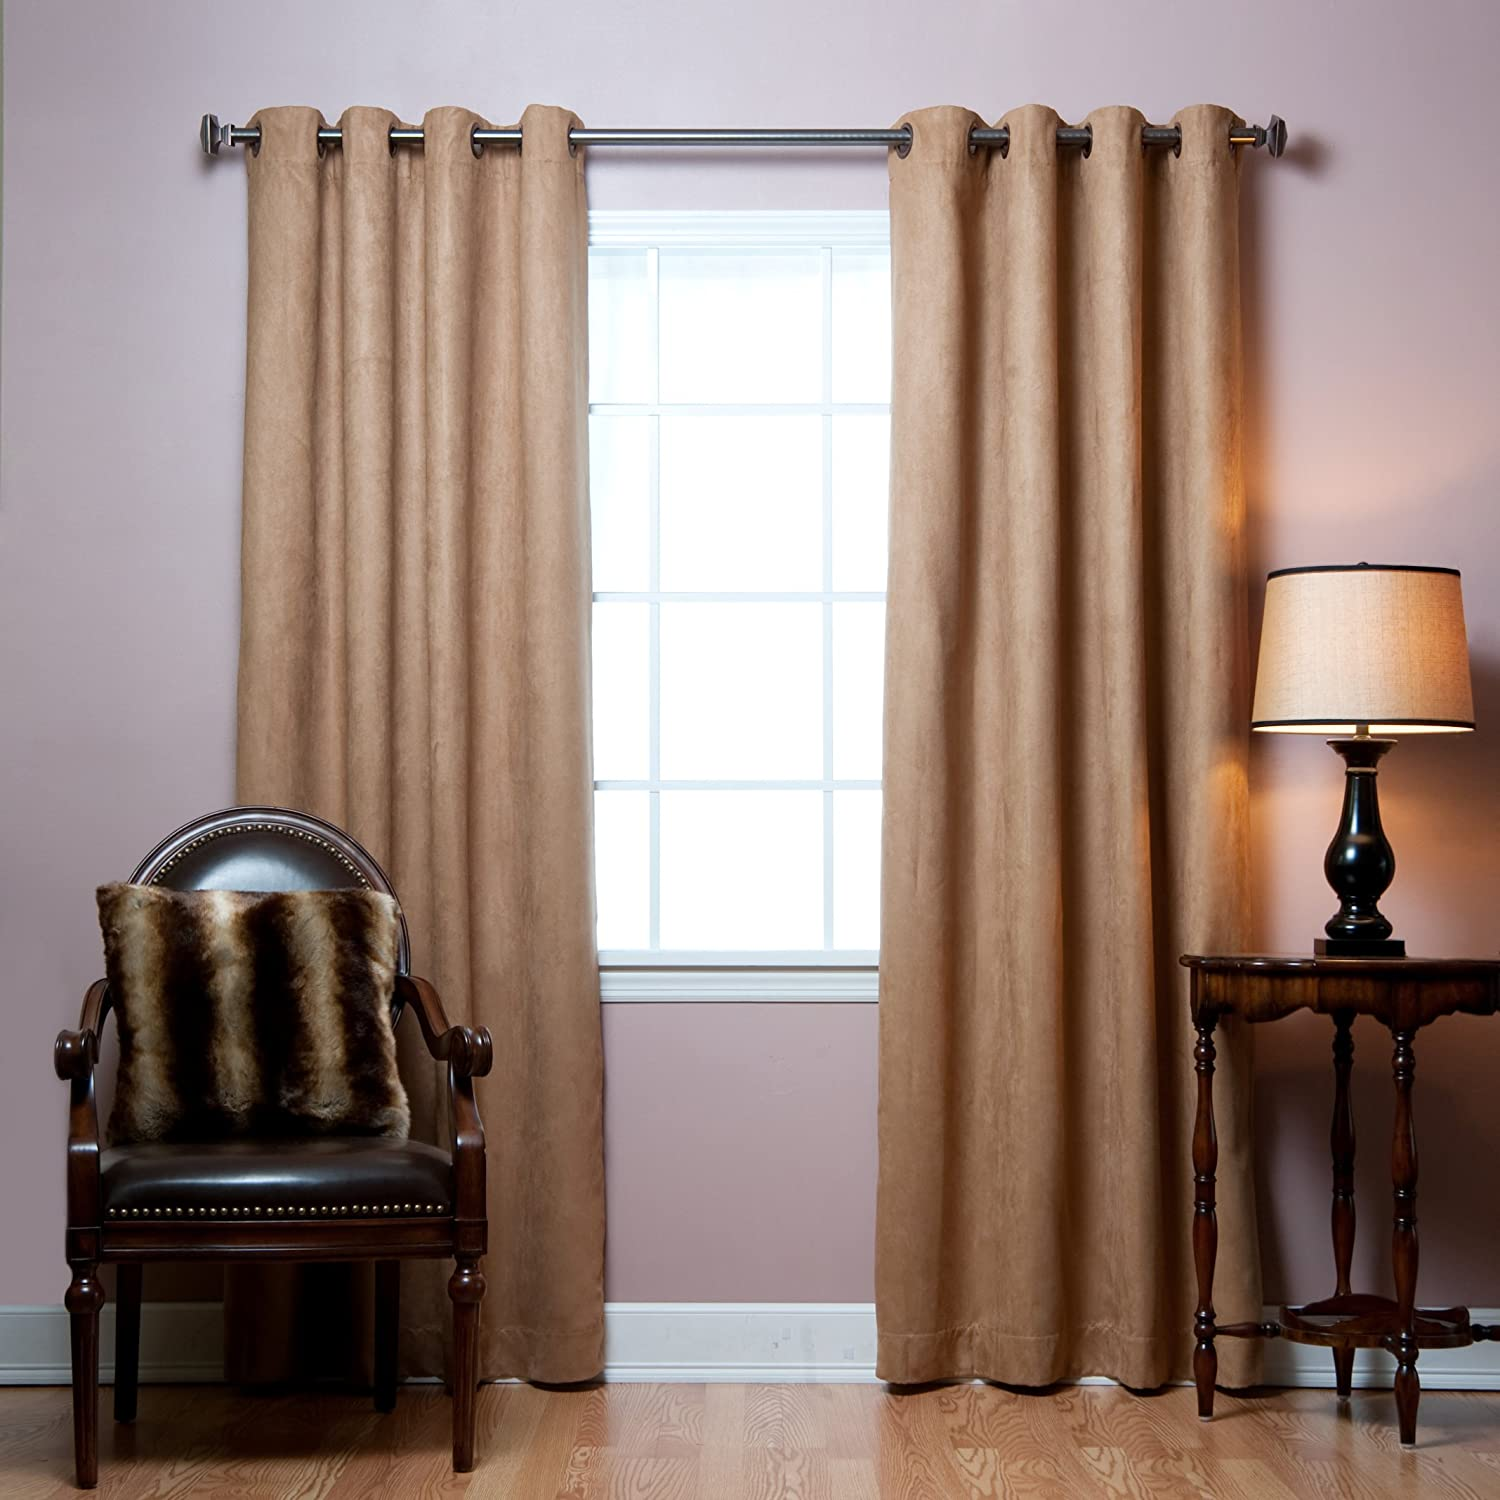 curtain moroccan gradient top print pin treatment window amazon curtains grommet blackout com insulated thermal deconovo